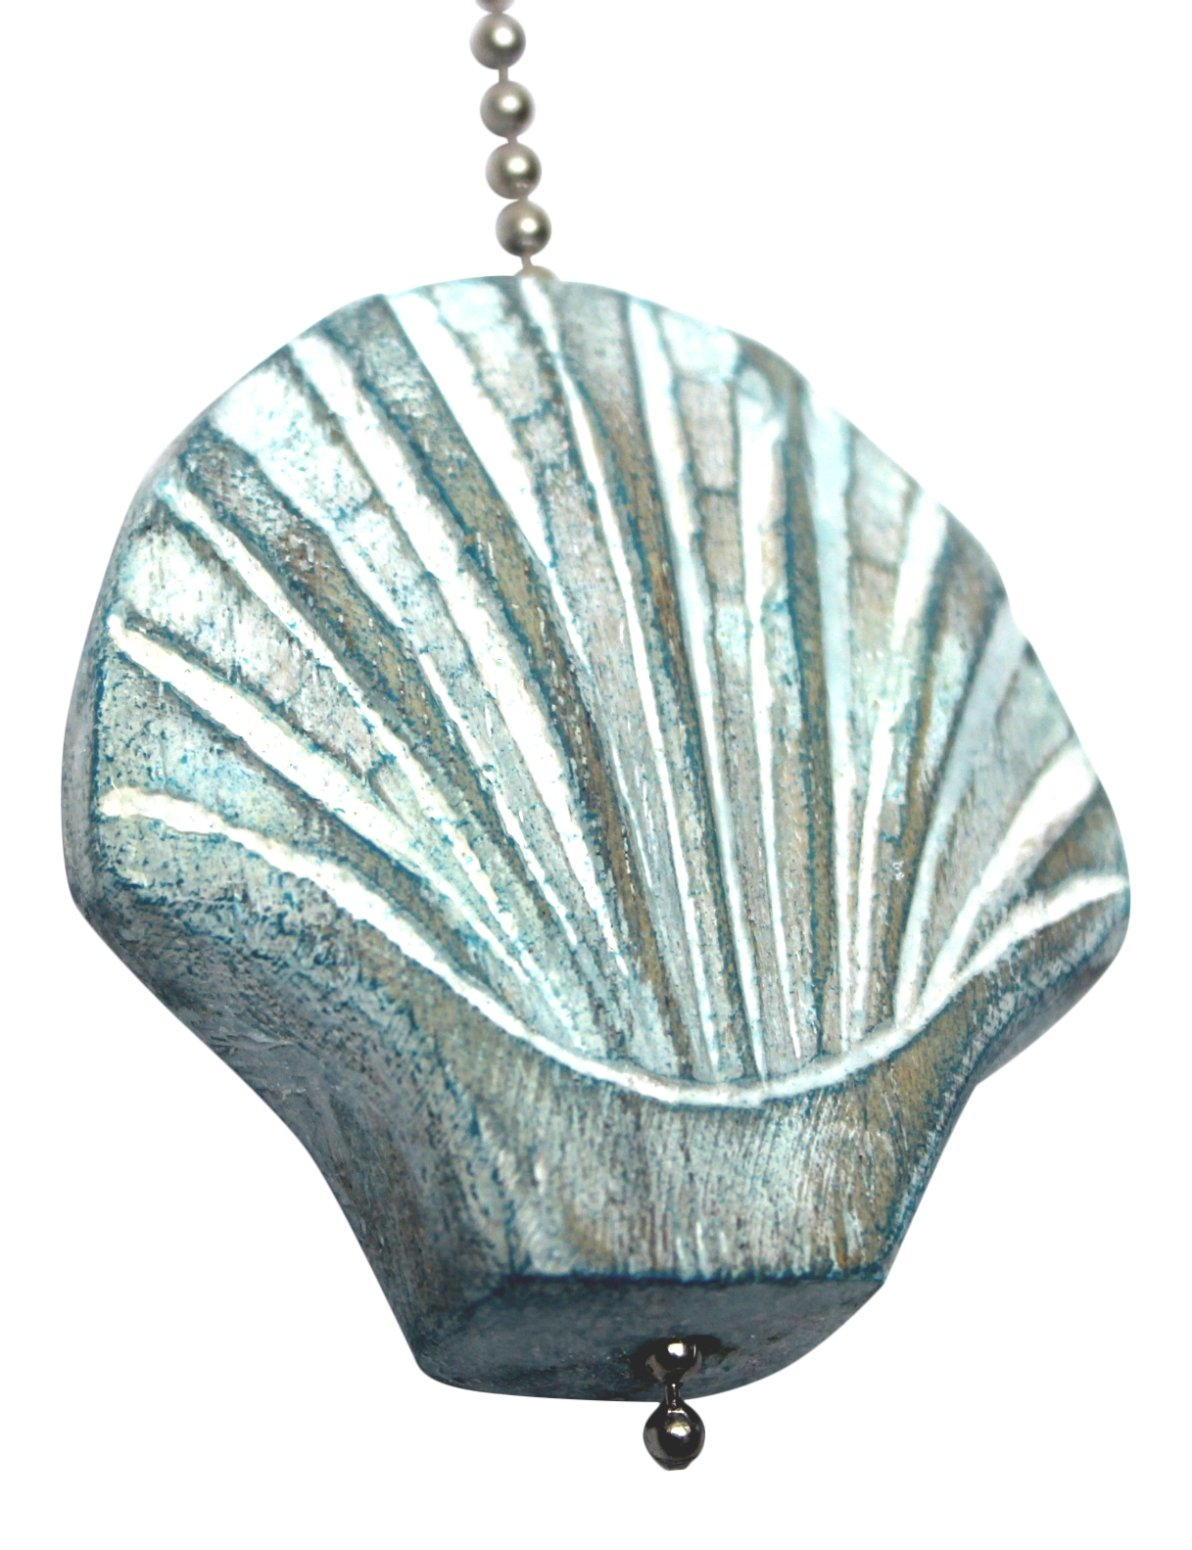 Aqua Scallop Shell Hand Carved Wood Ceiling Fan Light Pull by MTI (Image #2)